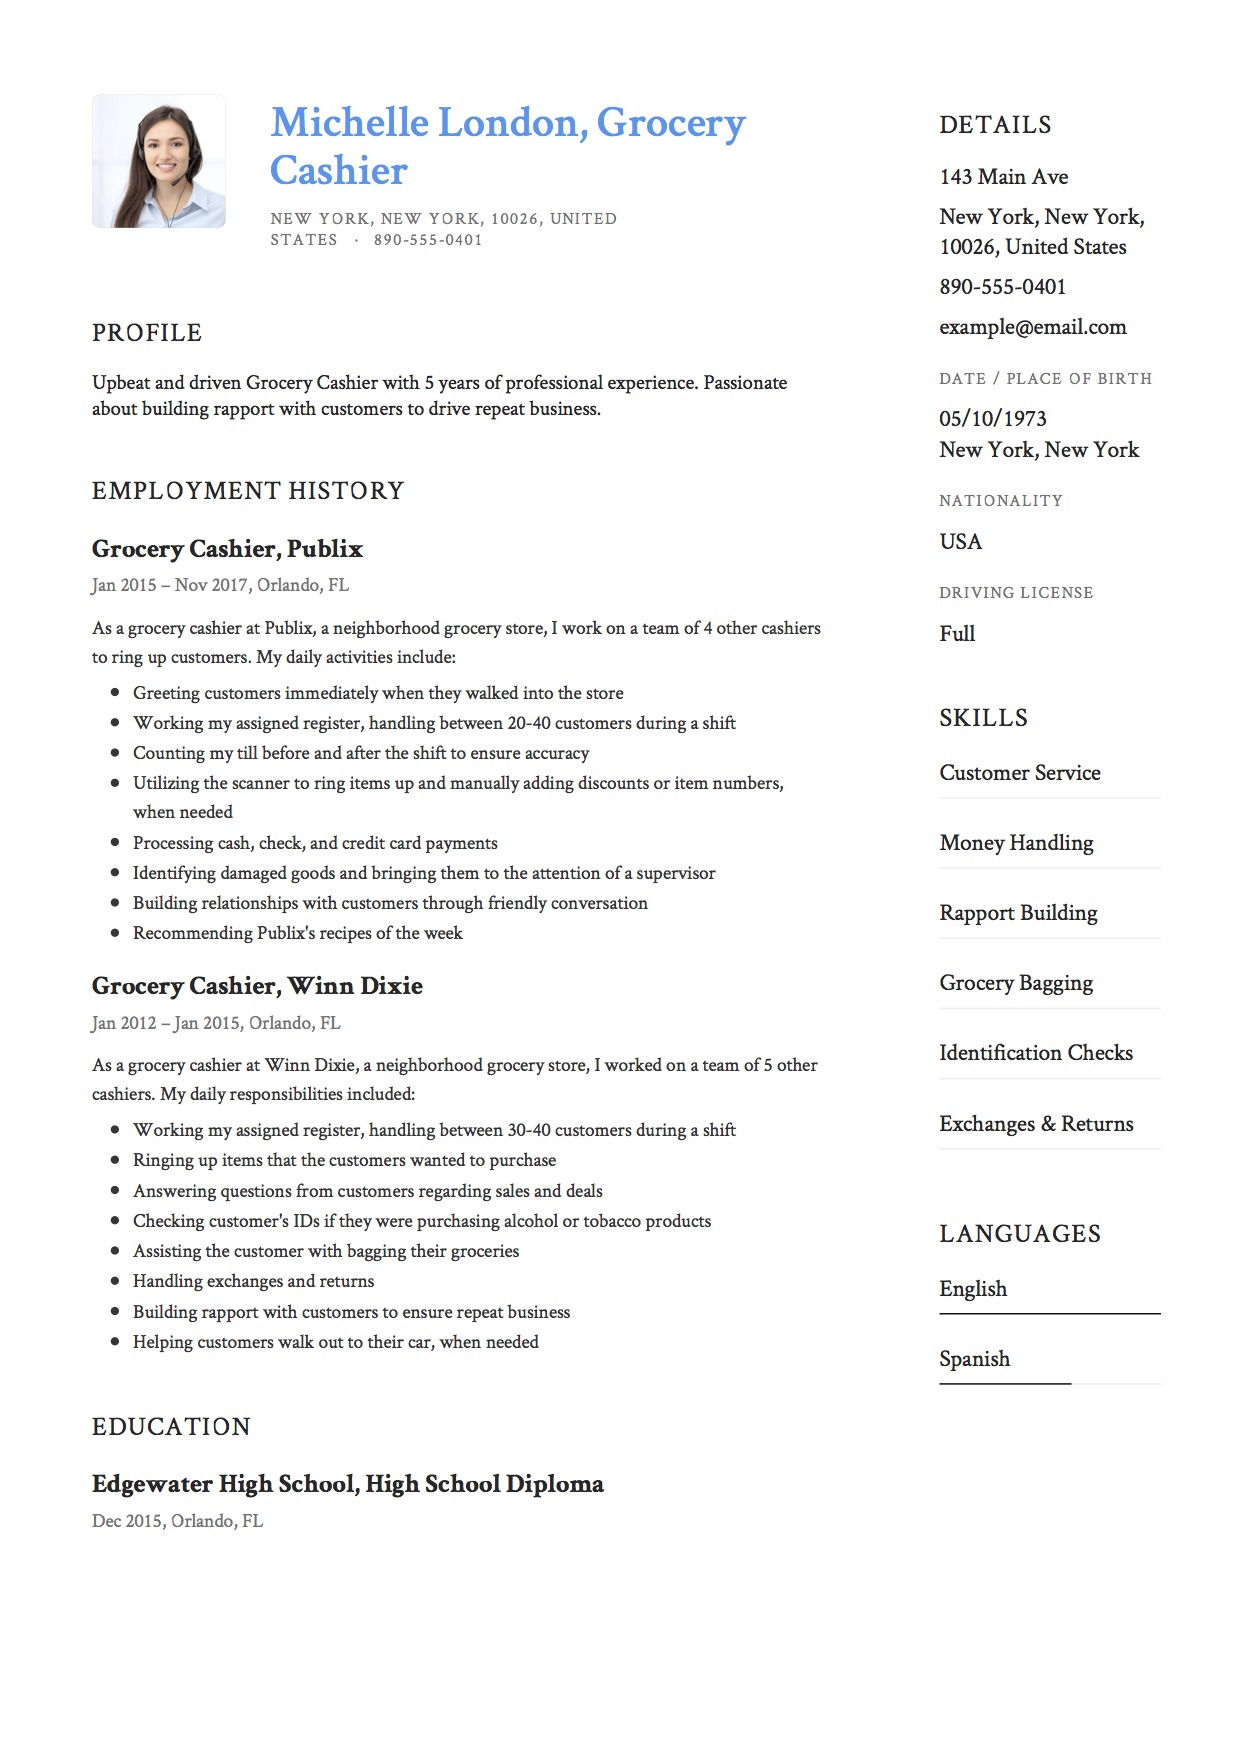 Cashier Resume Description 12 Grocery Cashier Resume Sample S 2018 Free Downloads